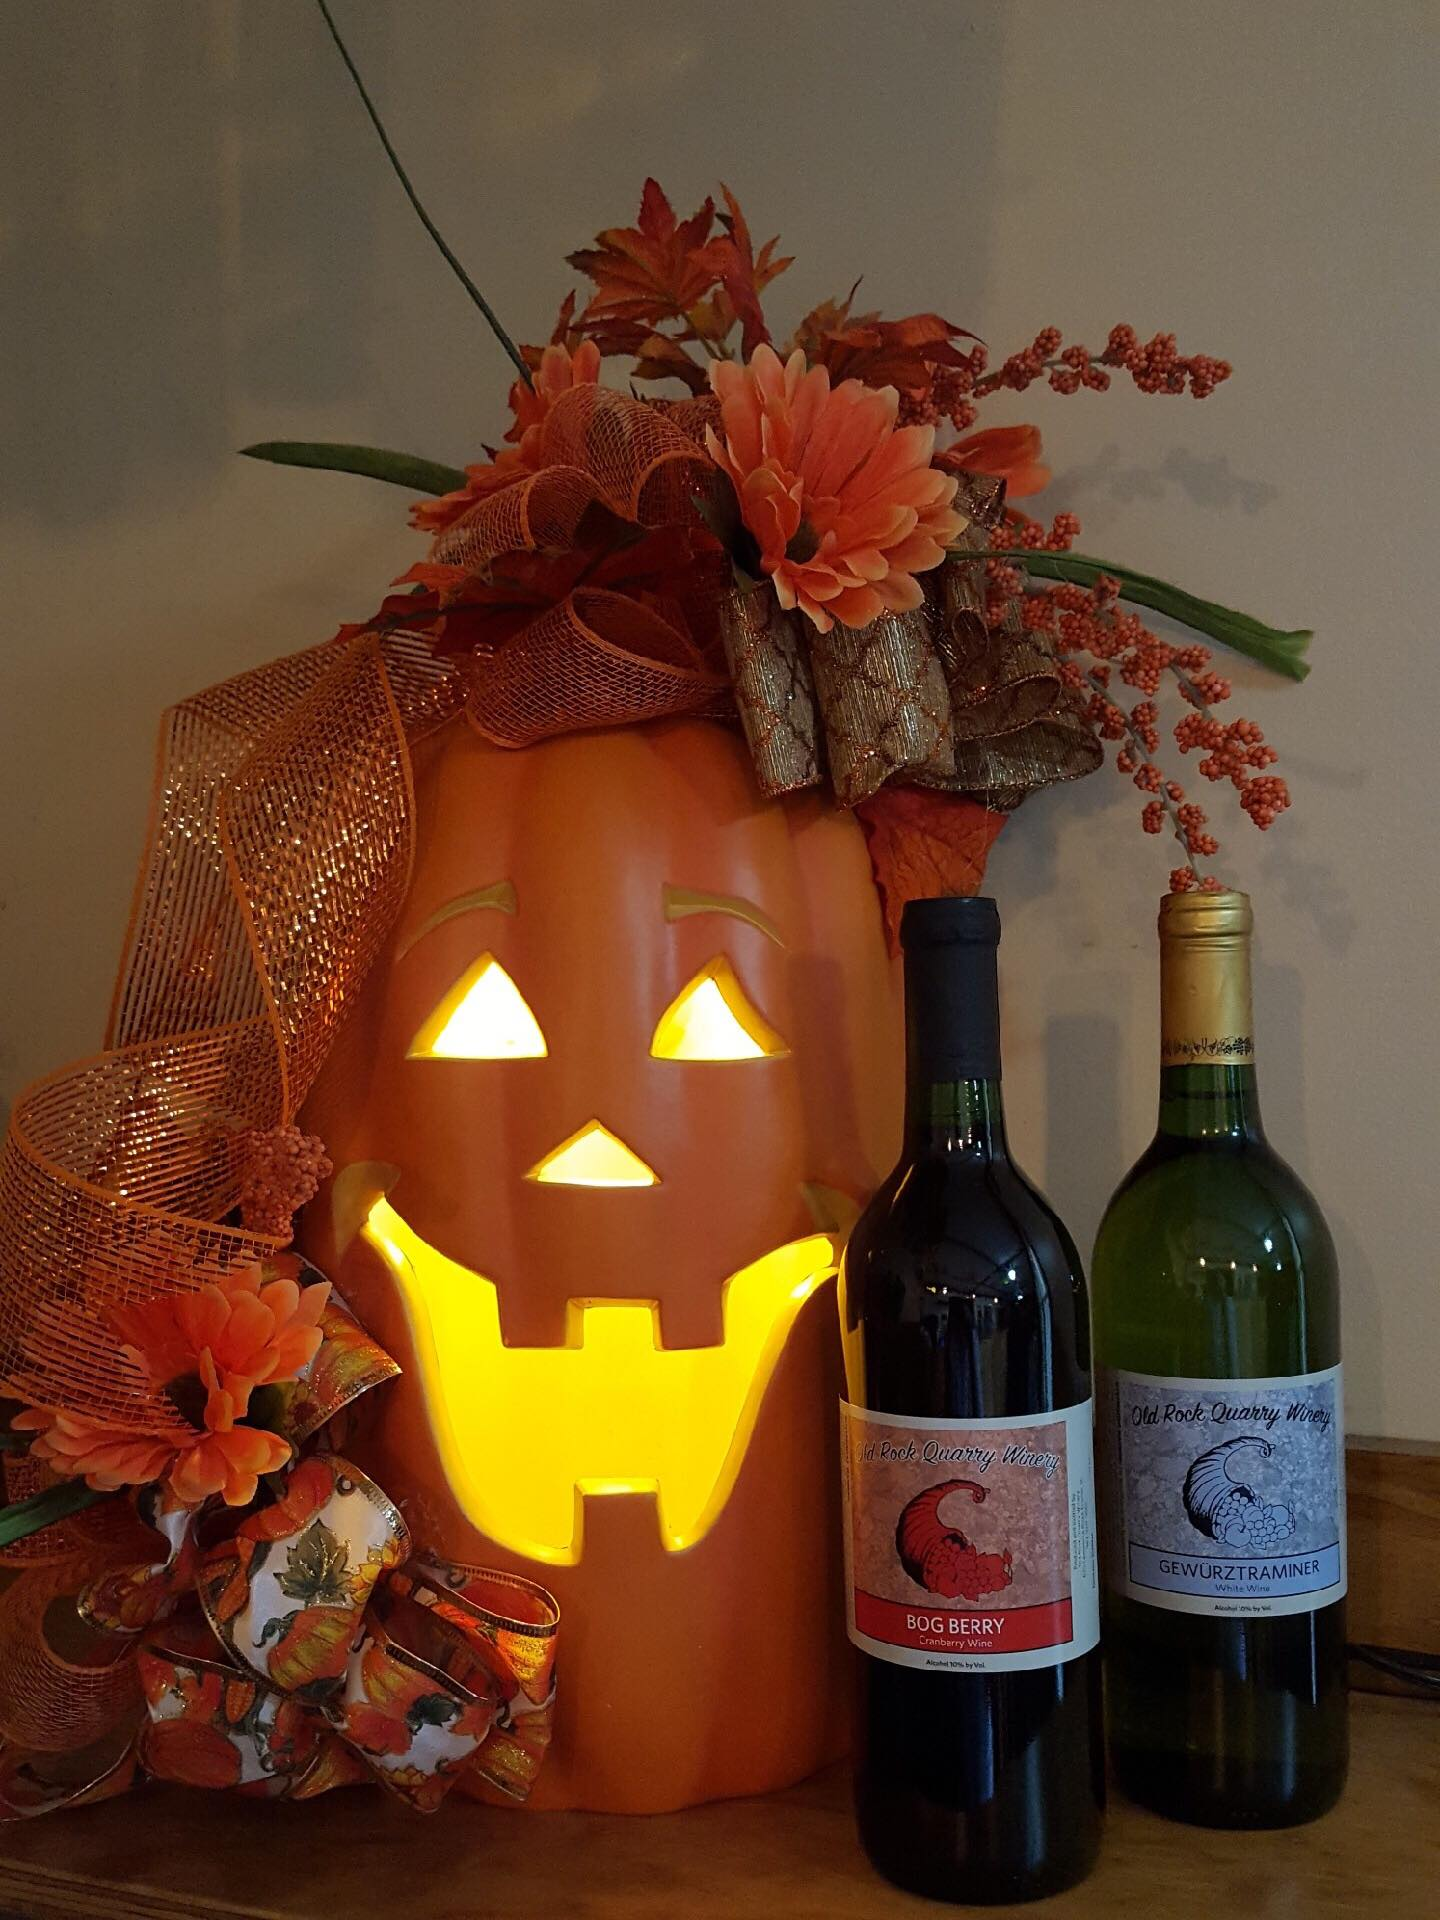 Old Rock Quarry Winery Fall Kick Off Event – Saturday, Sept. 19